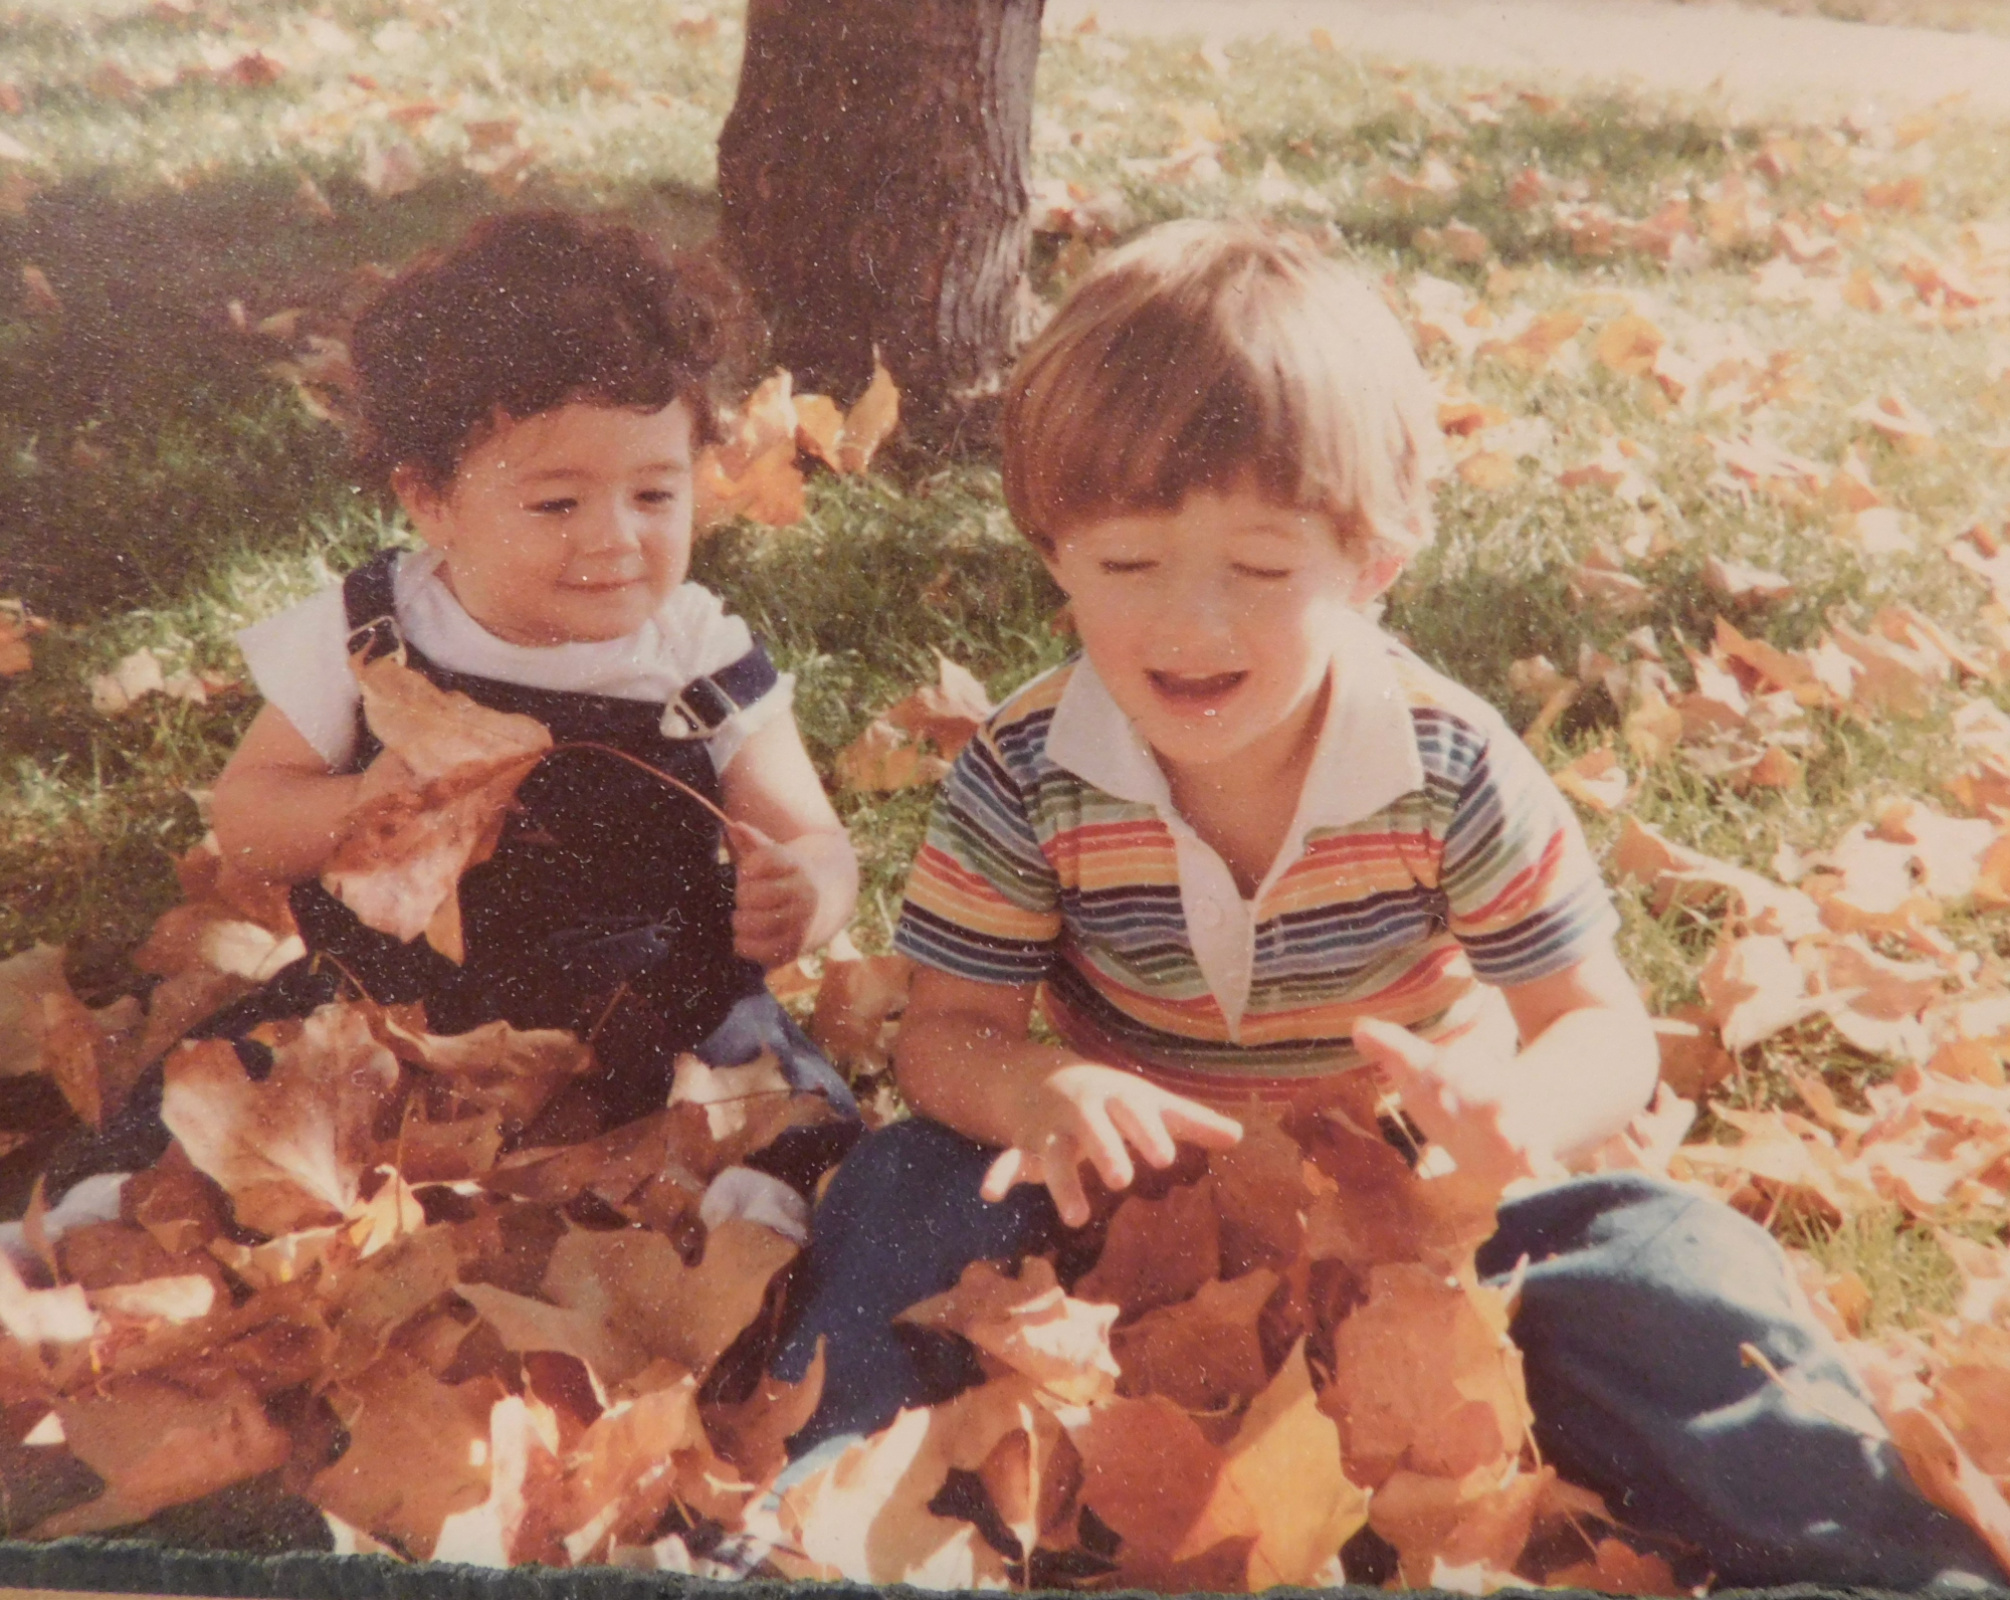 Little curly haired Ben and his brother Aaron in the fall leaves